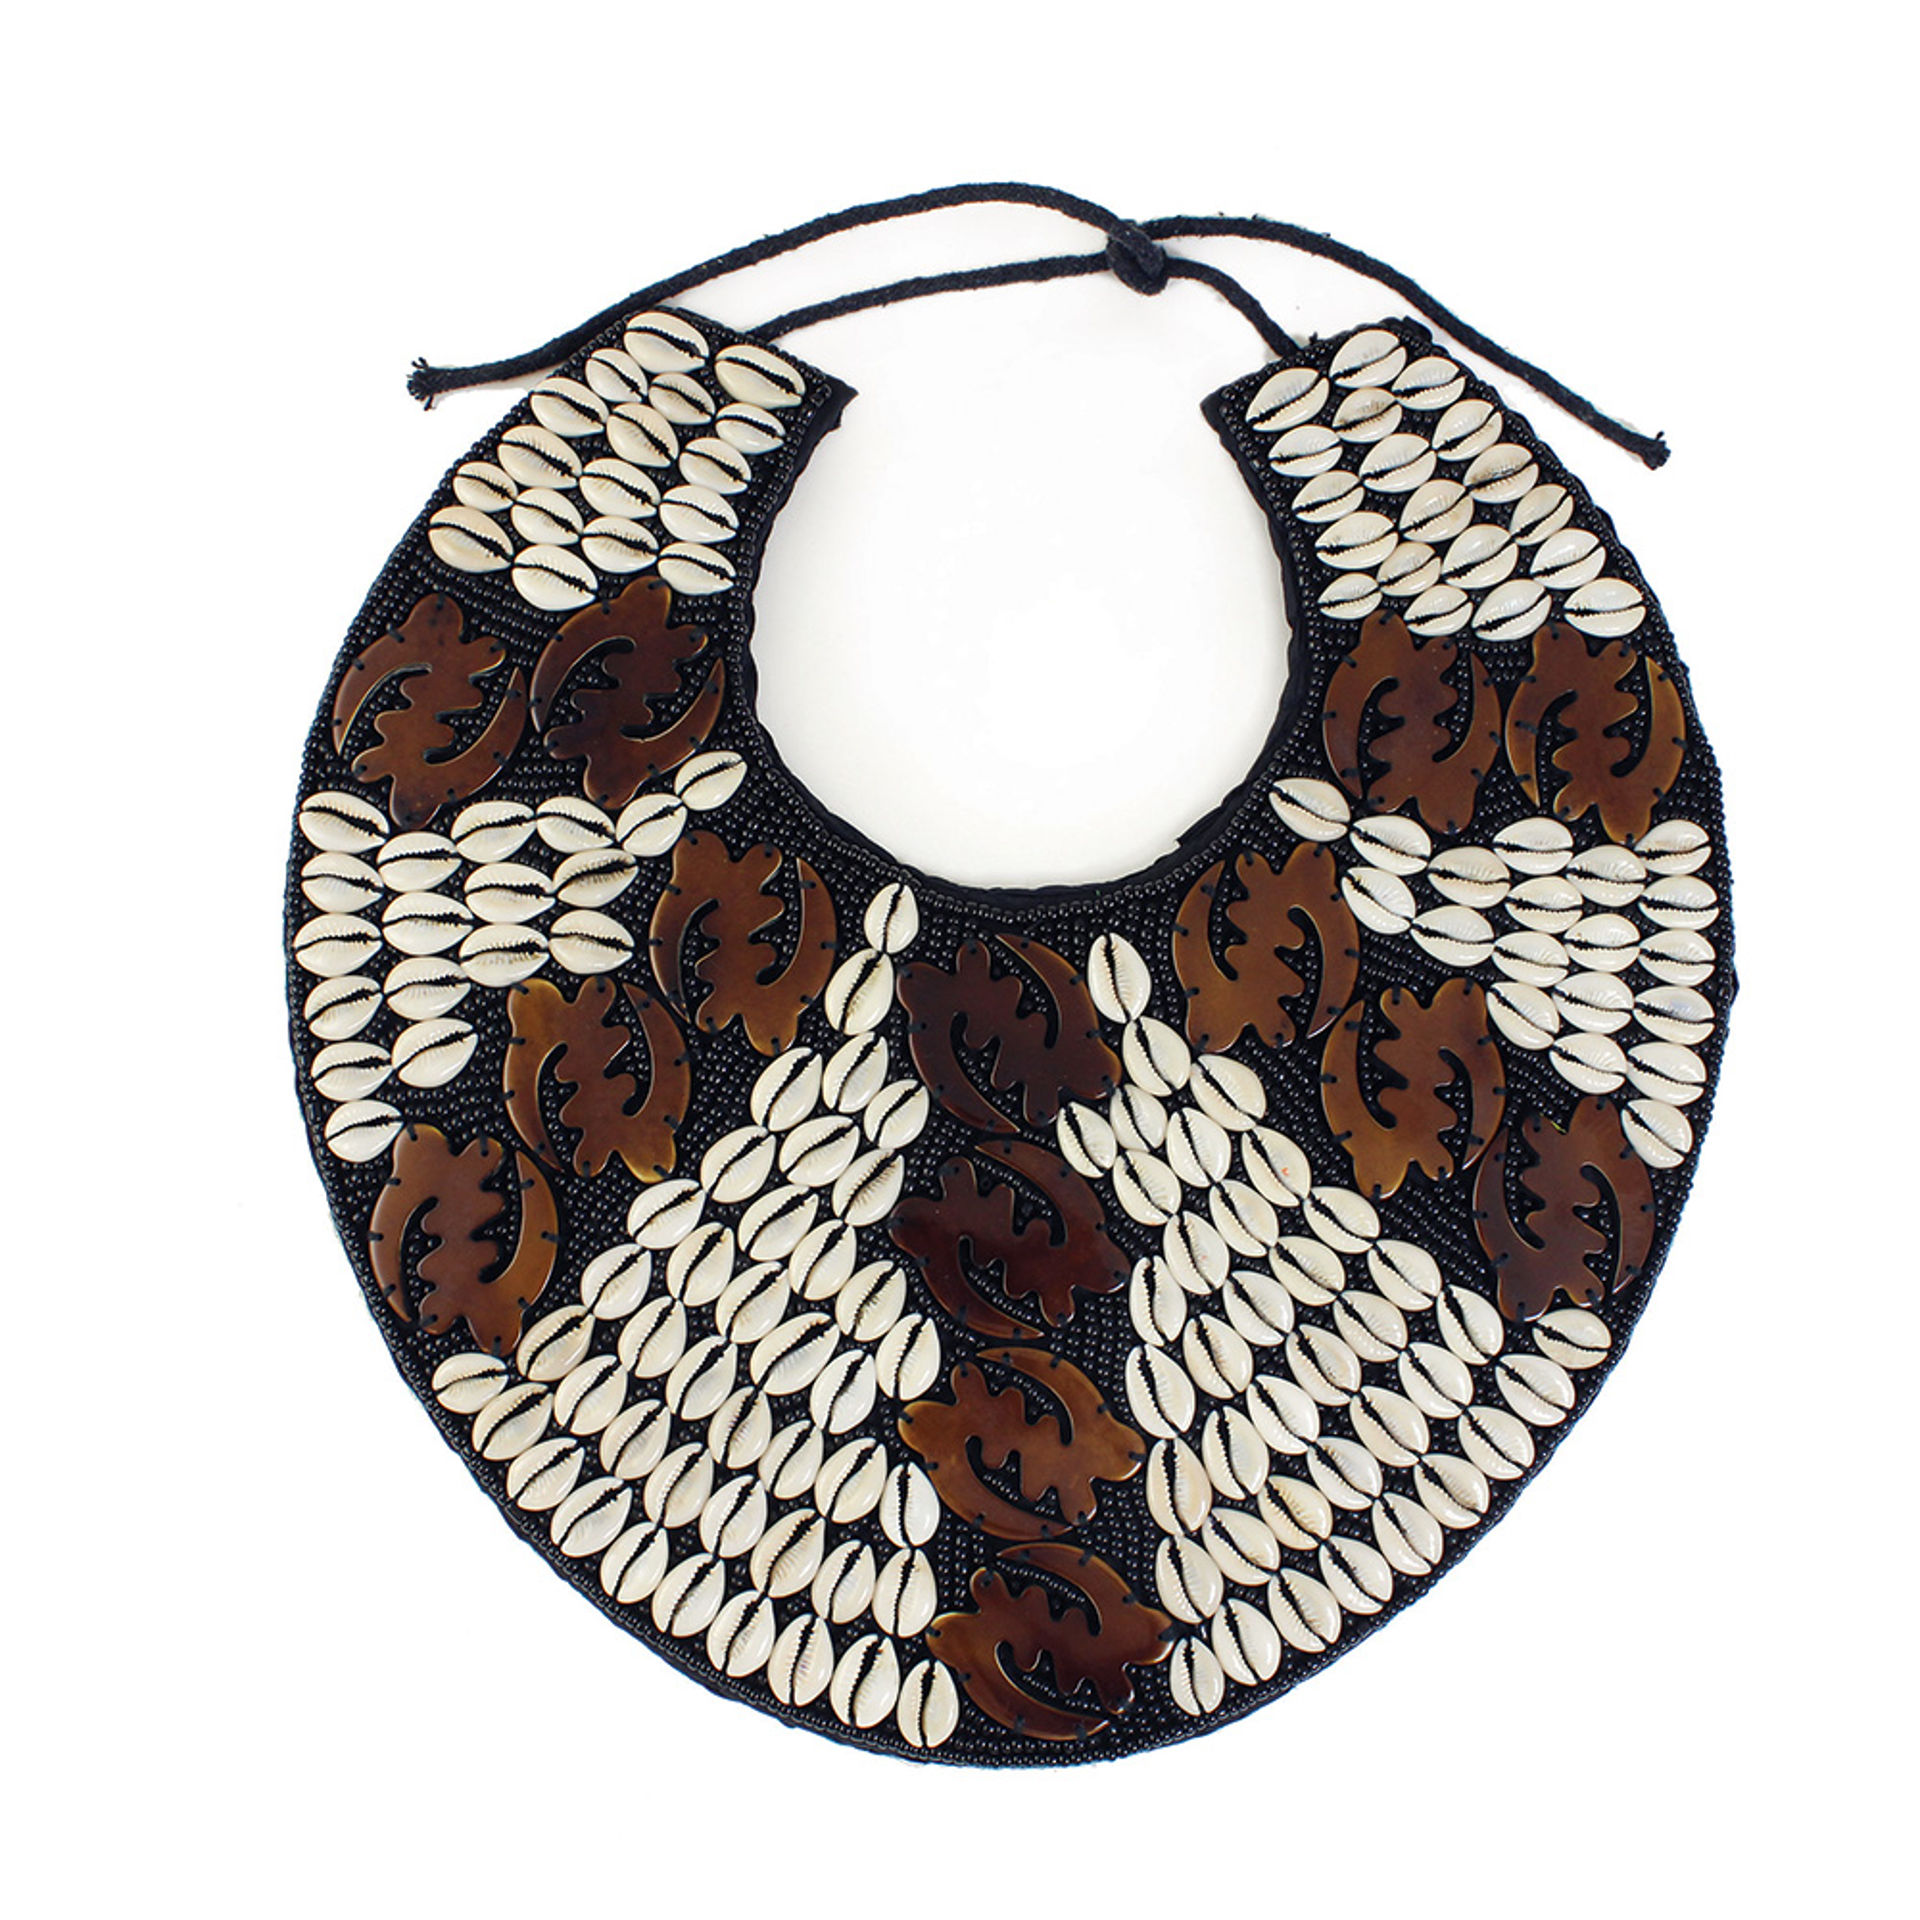 Picture of Gye Nyame Breastplate Necklace: Brown